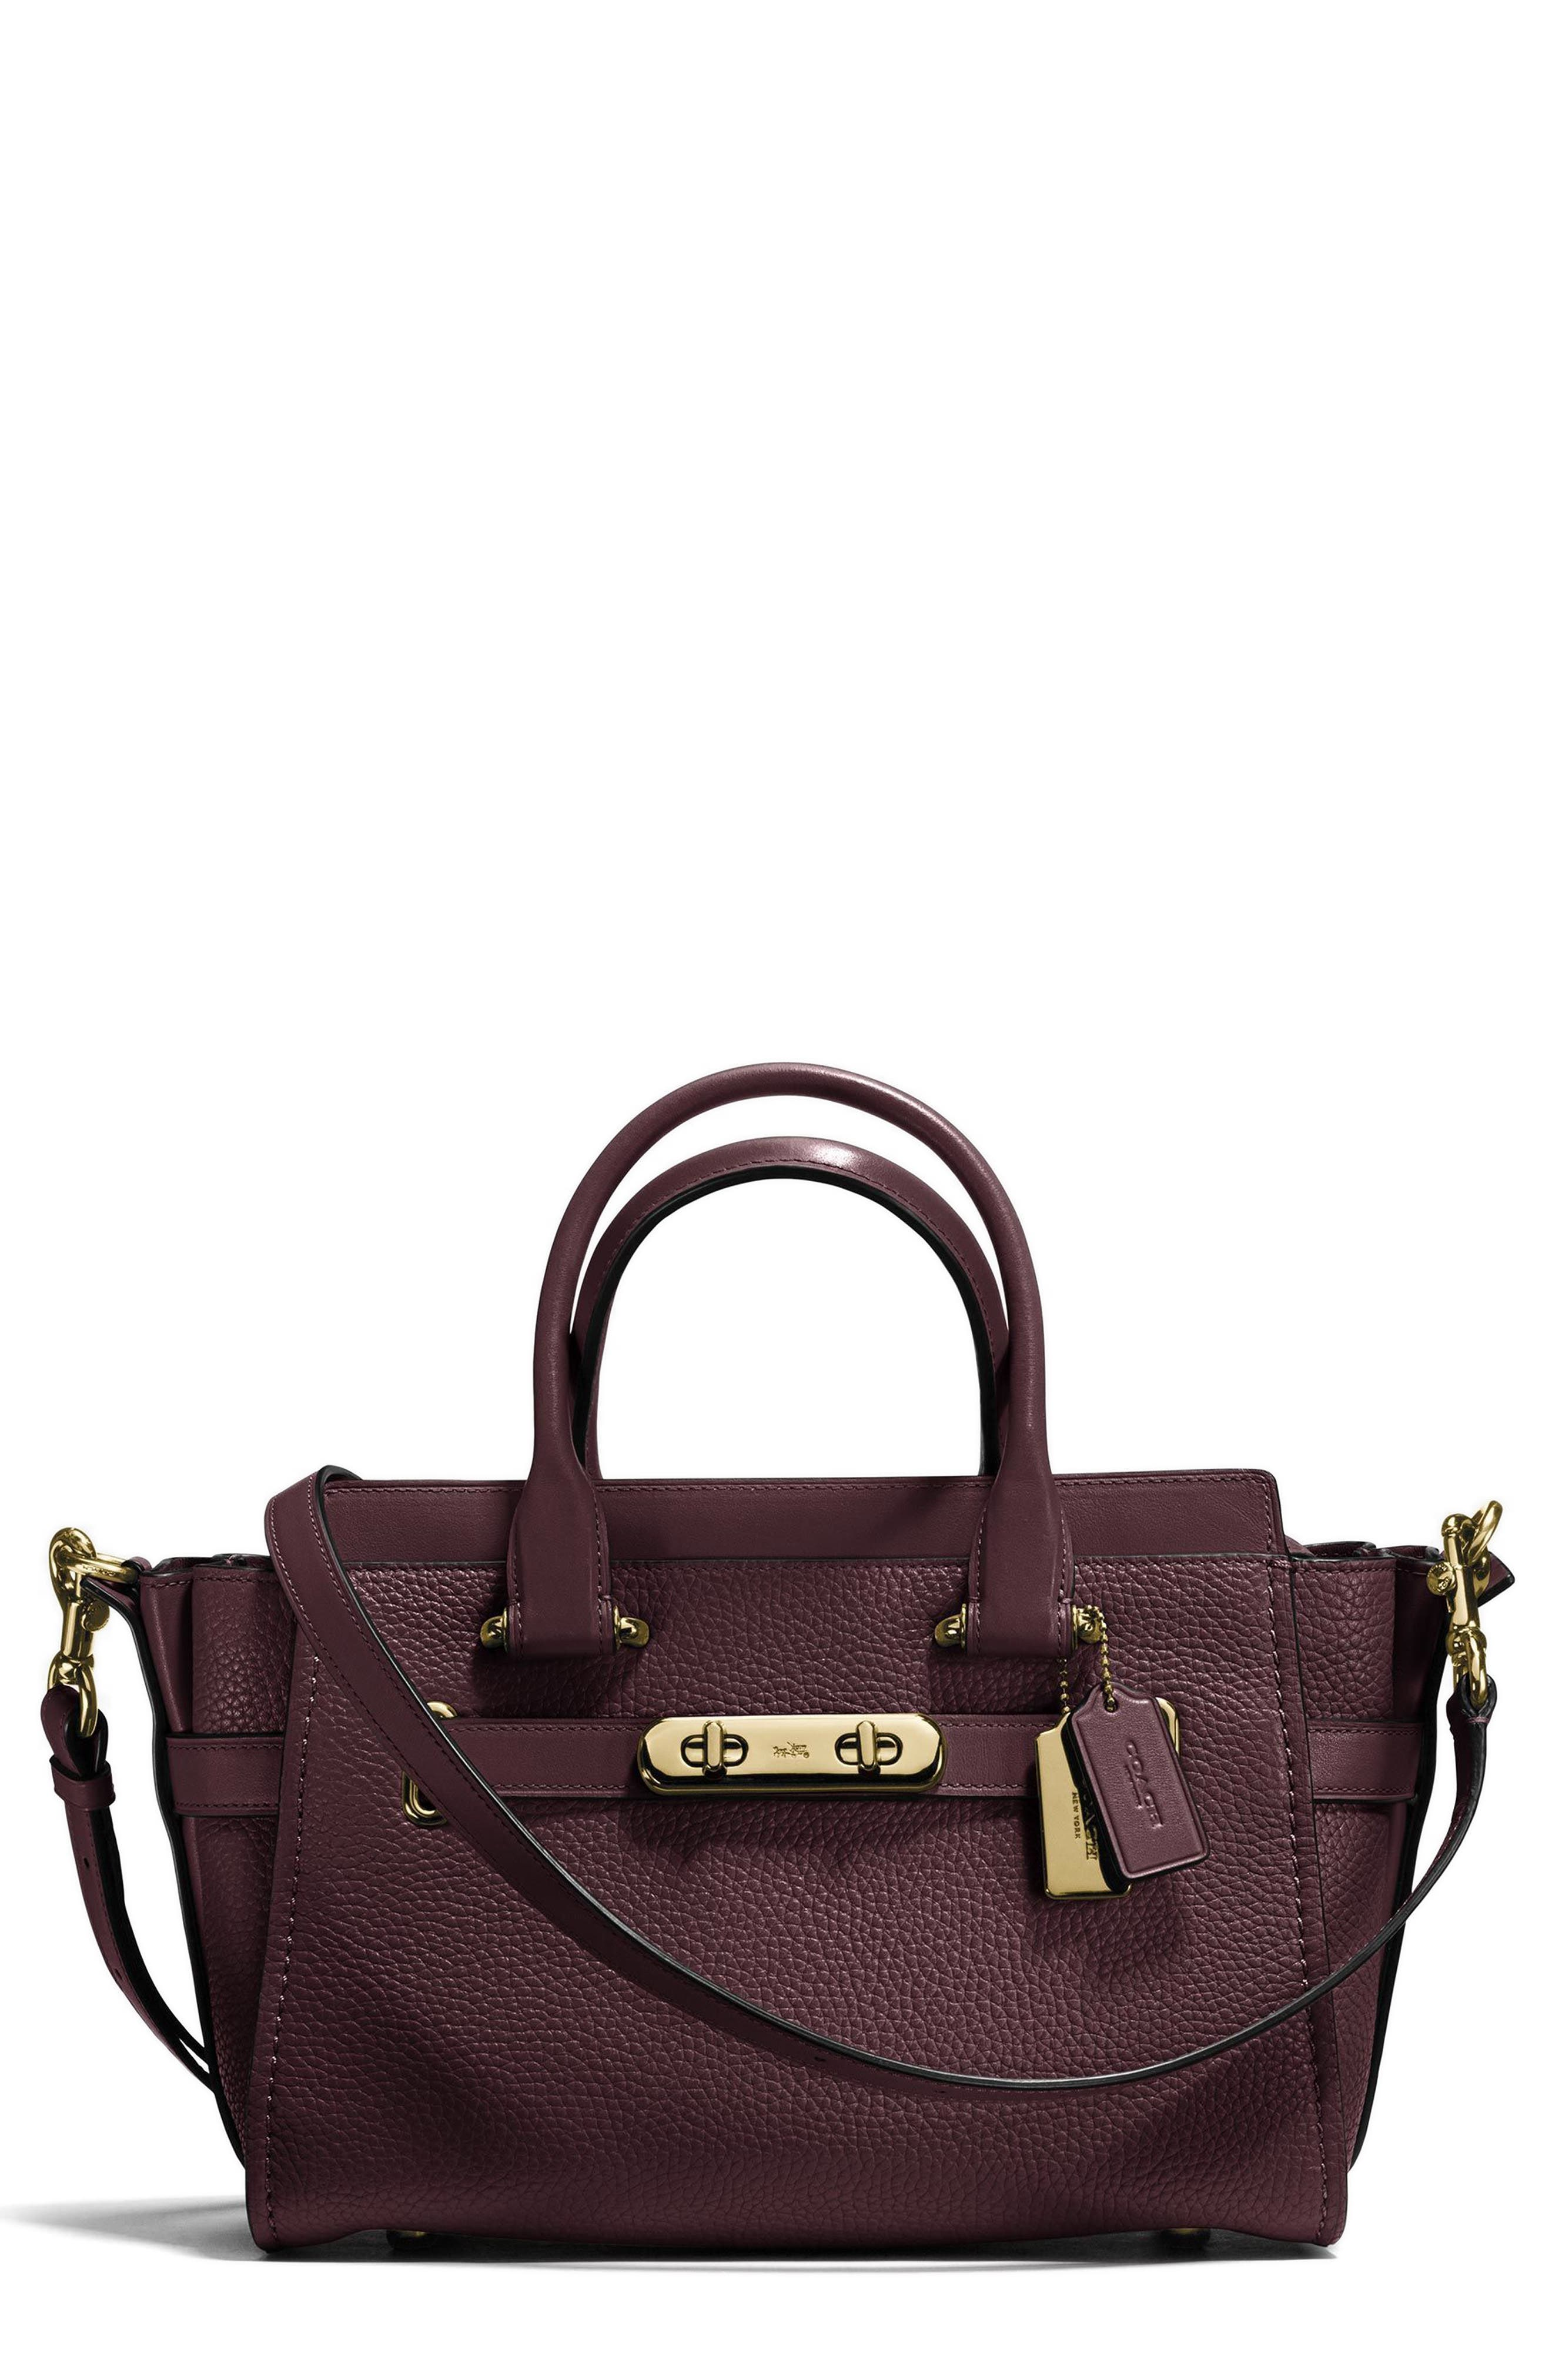 Swagger 27 Calfskin Leather Satchel,                             Main thumbnail 1, color,                             Oxblood